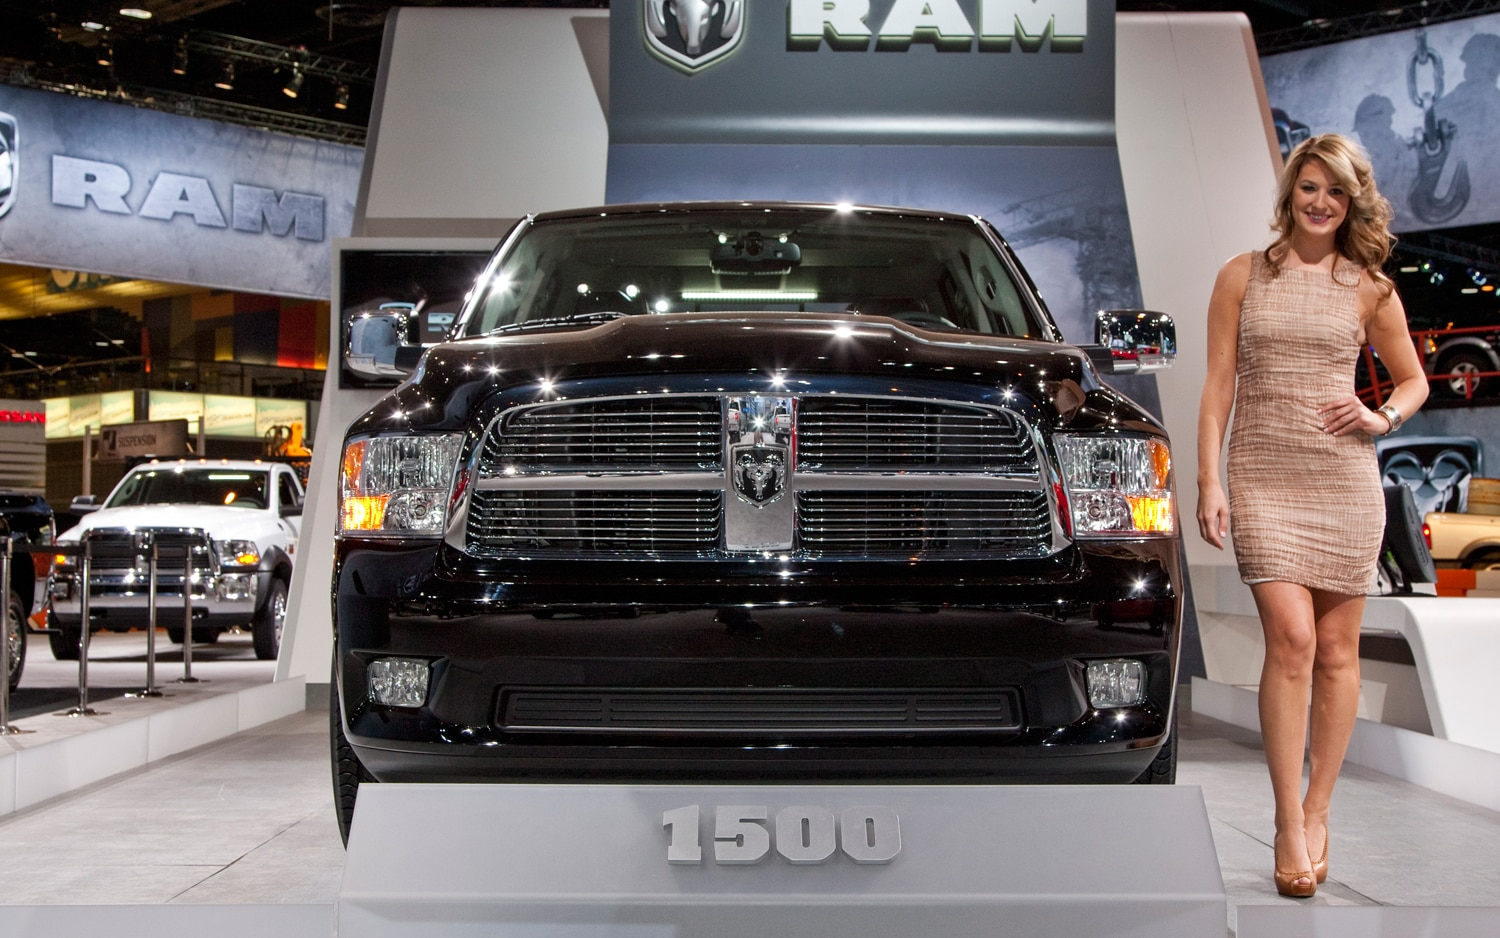 2012 Ram Laramie Limited Front View1